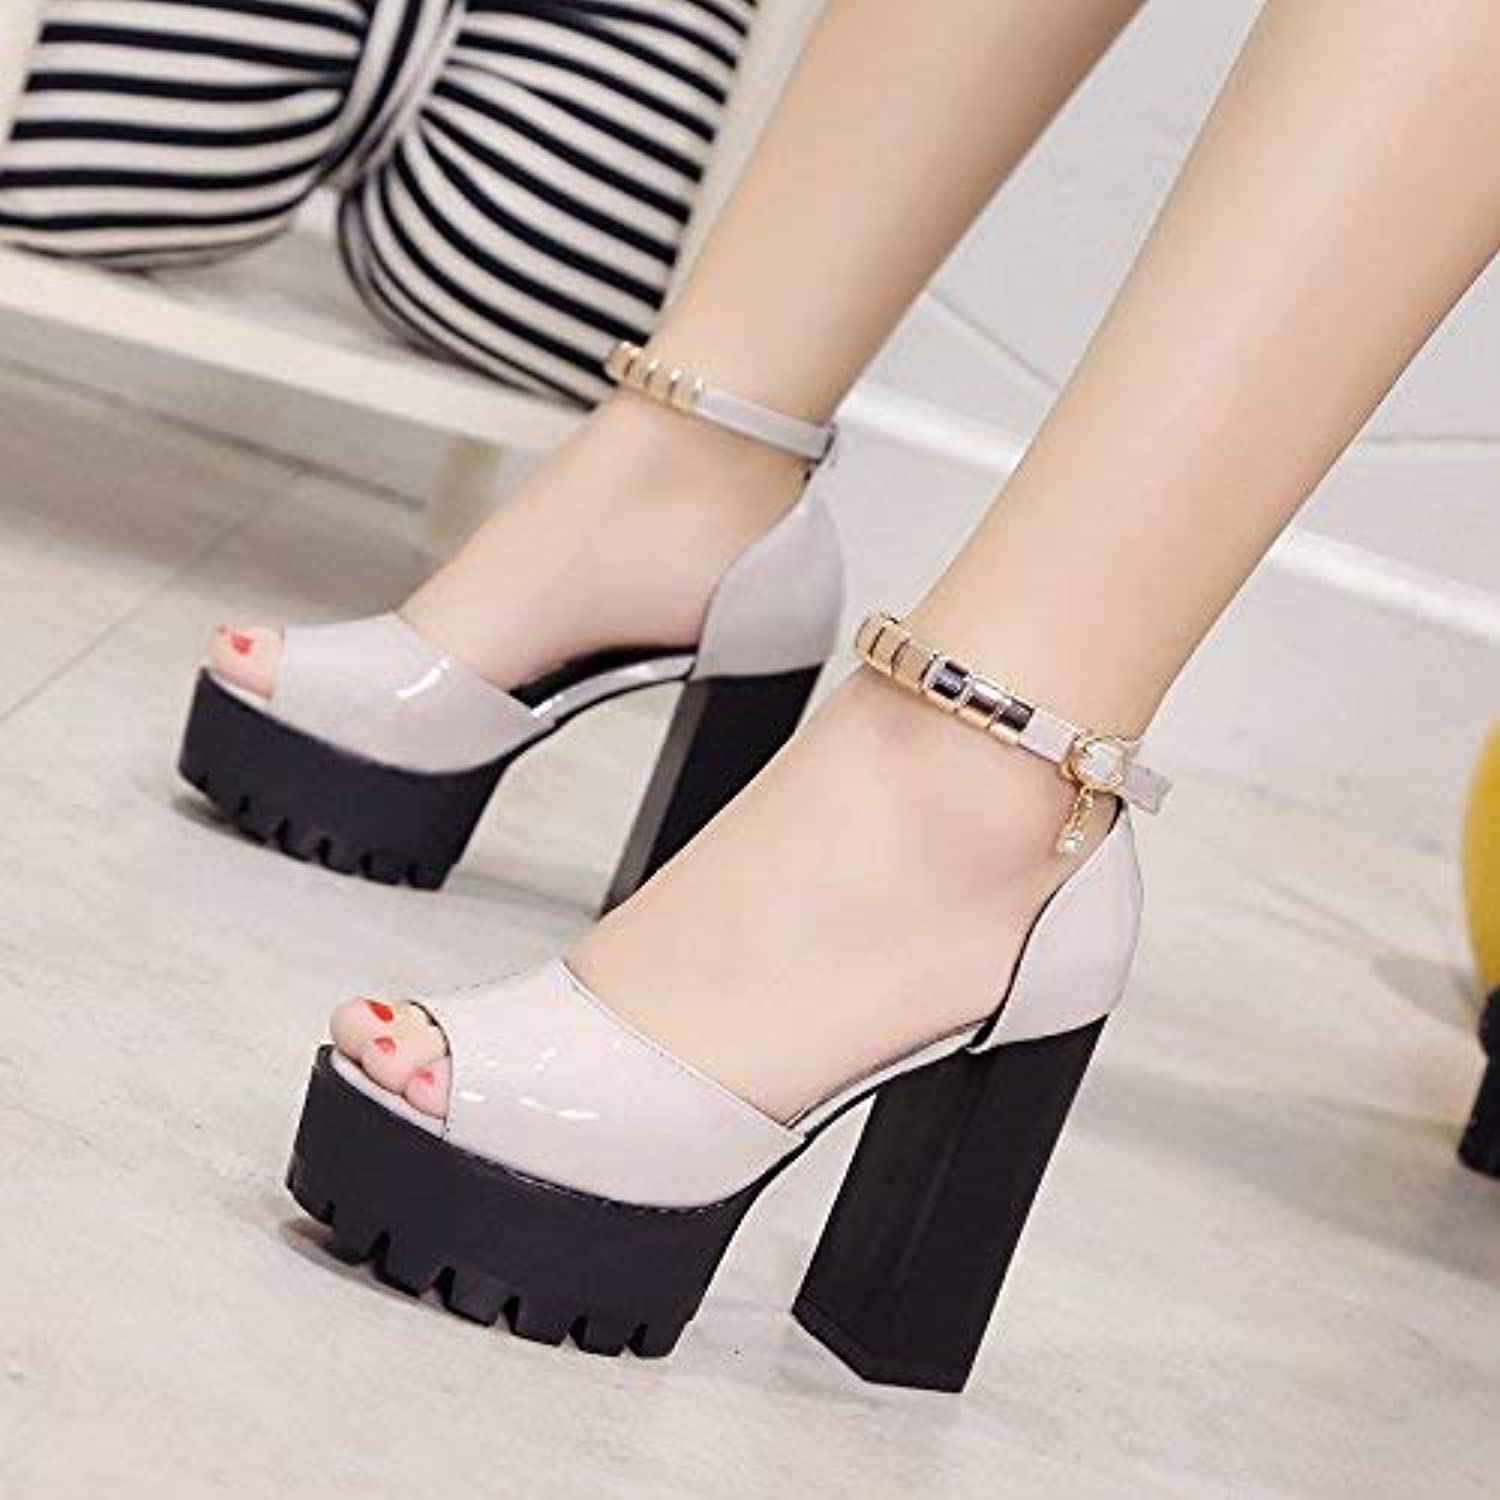 Comfortable and beautiful ladies sandals High Heel And Waterproof Table Fish Mouth With One Word Buckle Sandals